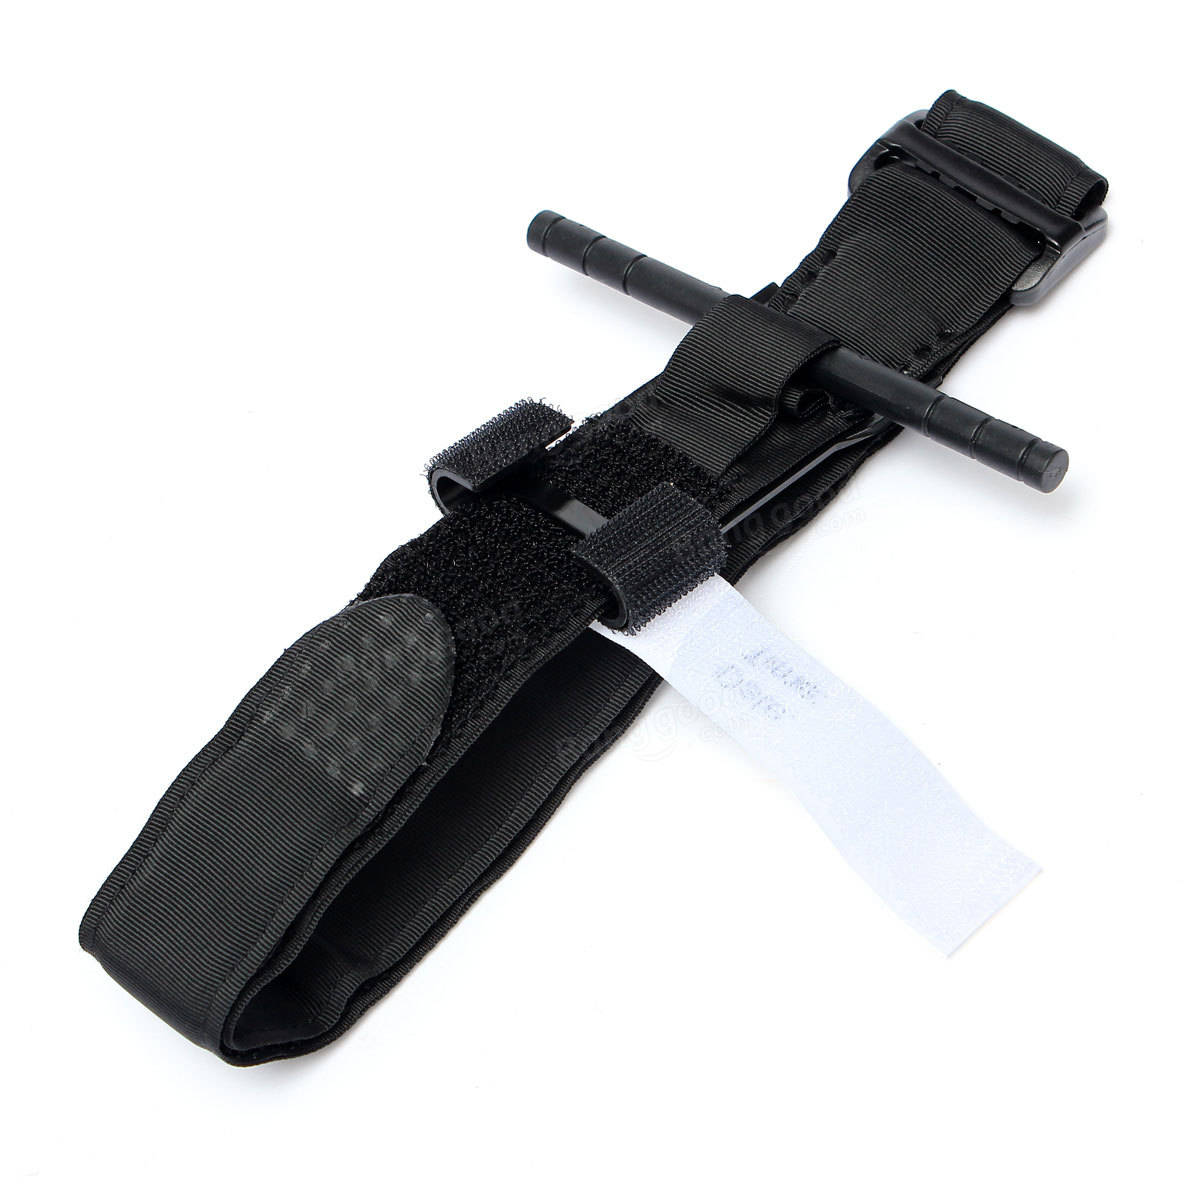 Tourniquets One-handed Spinning Combat Military Tactical Tourniquet Medical First Aid Emergency Tour